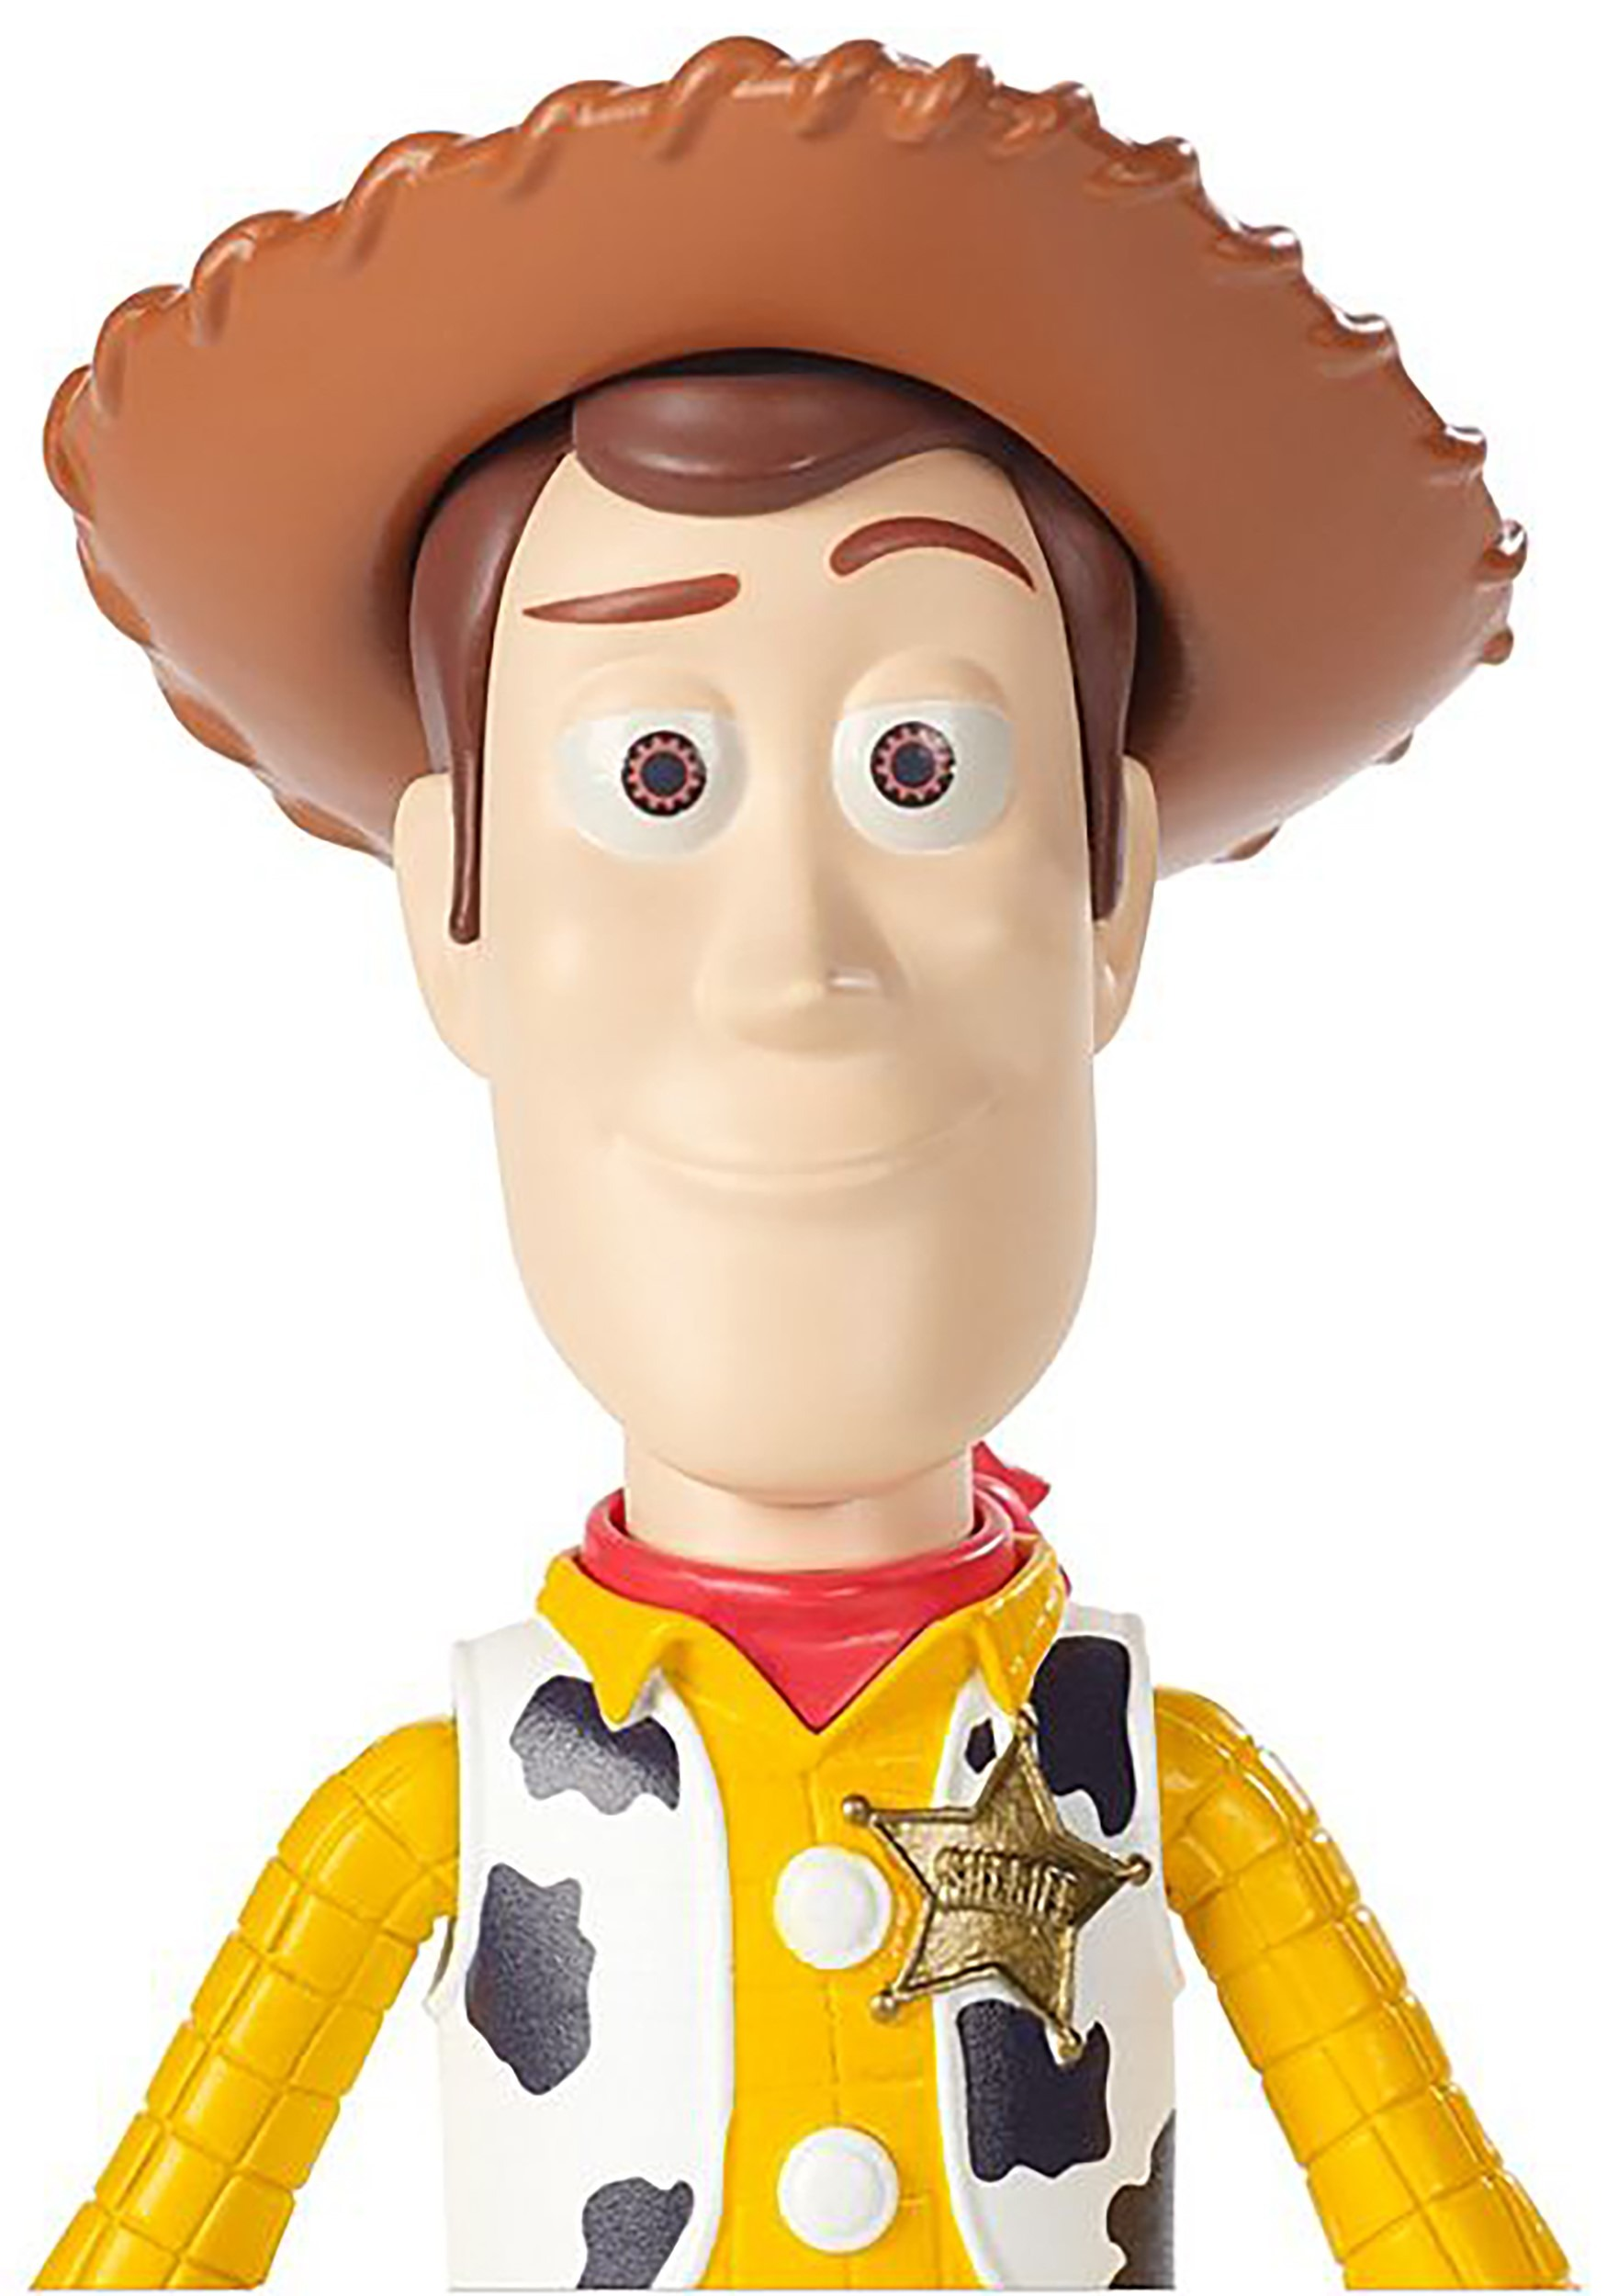 The Toy Story 4 Woody 7in Figure